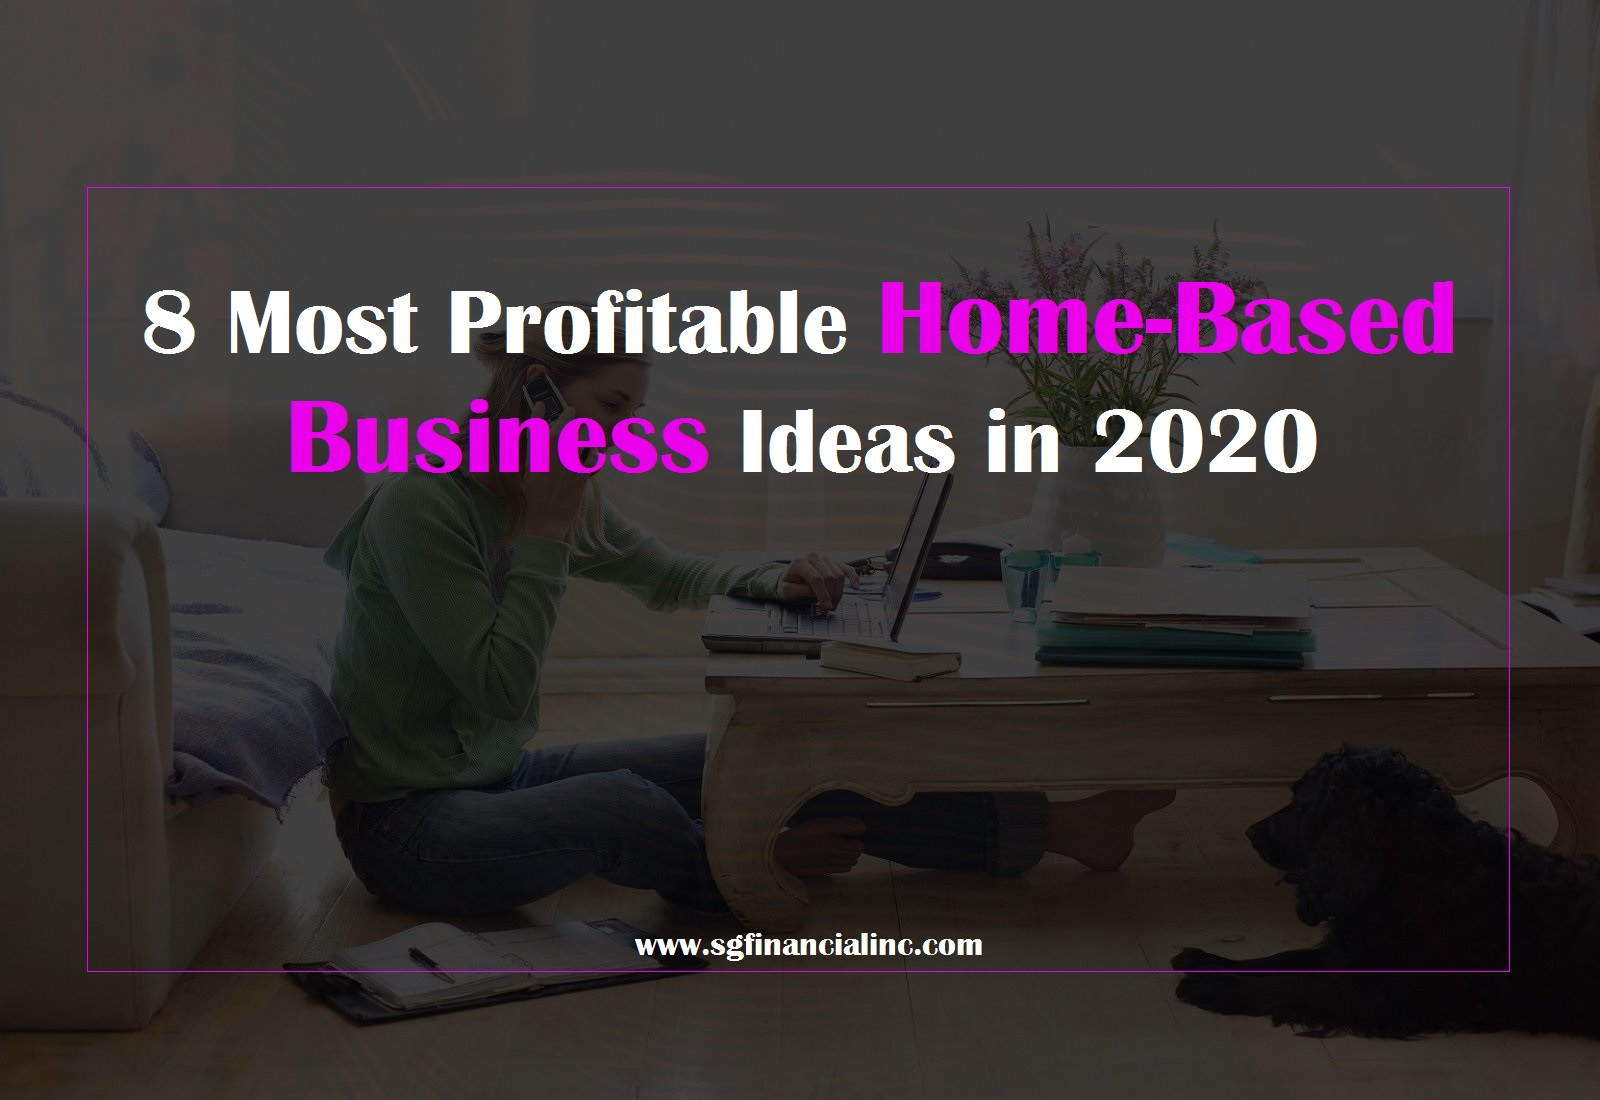 8 Most Profitable Home-Based Business Ideas in 2020